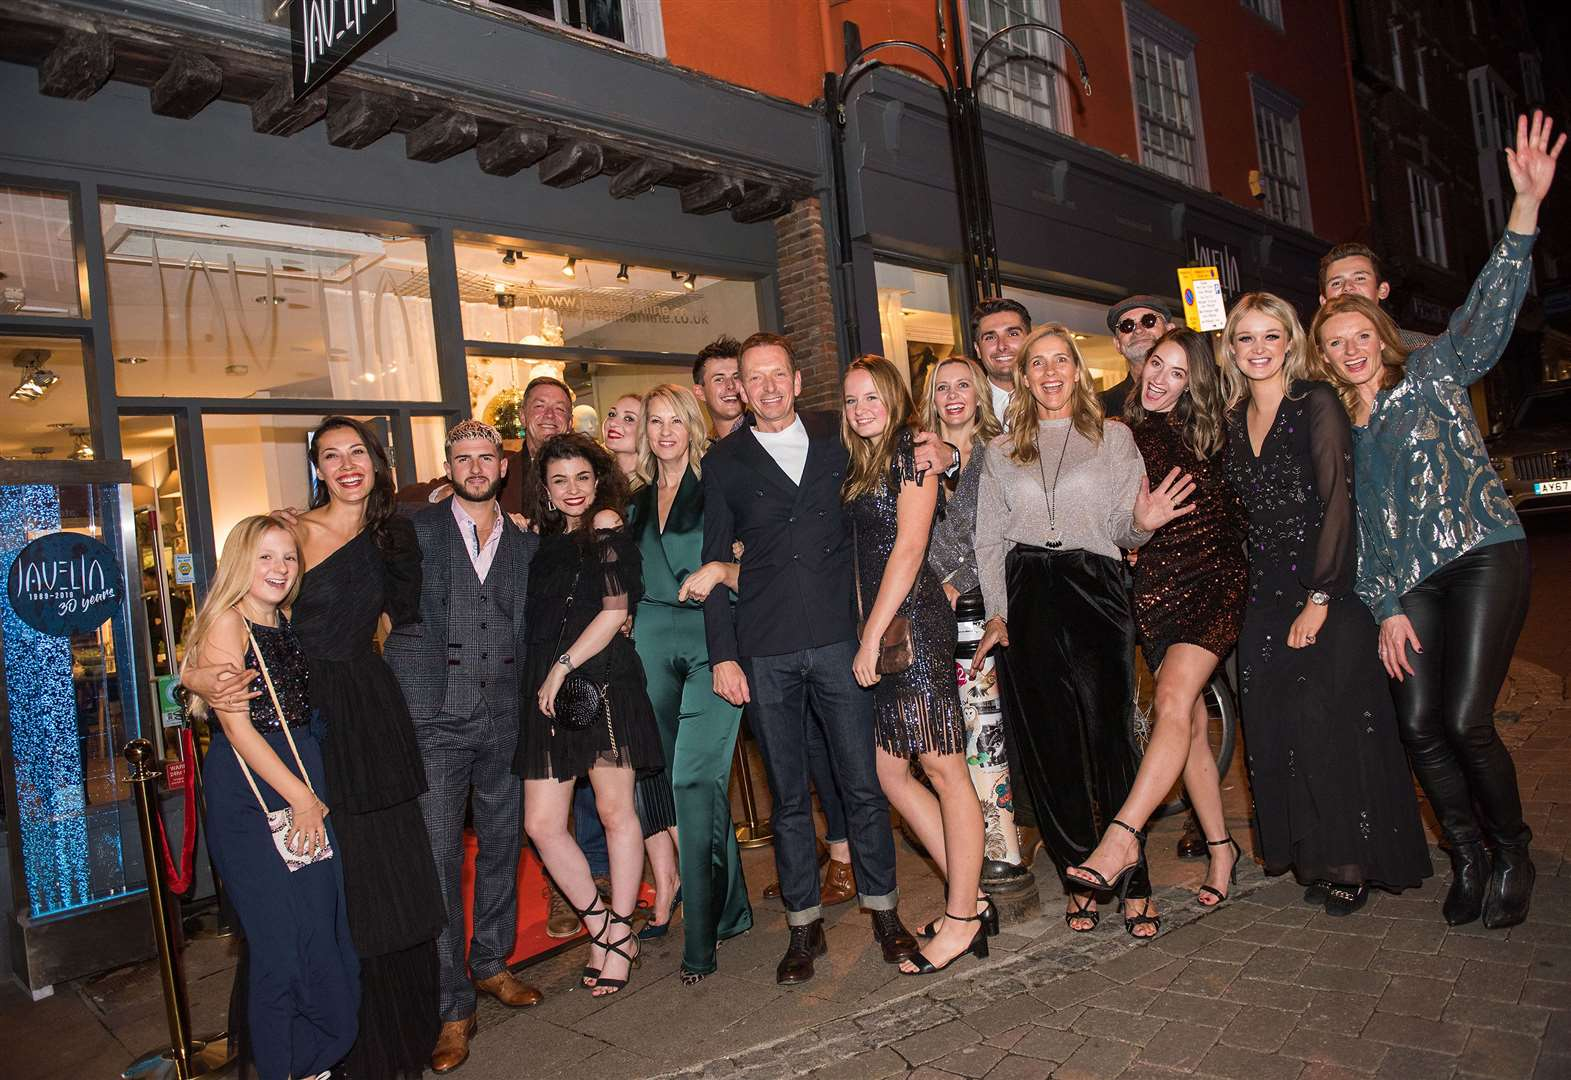 All the best pictures from Javelin's glamorous 30th Birthday Party